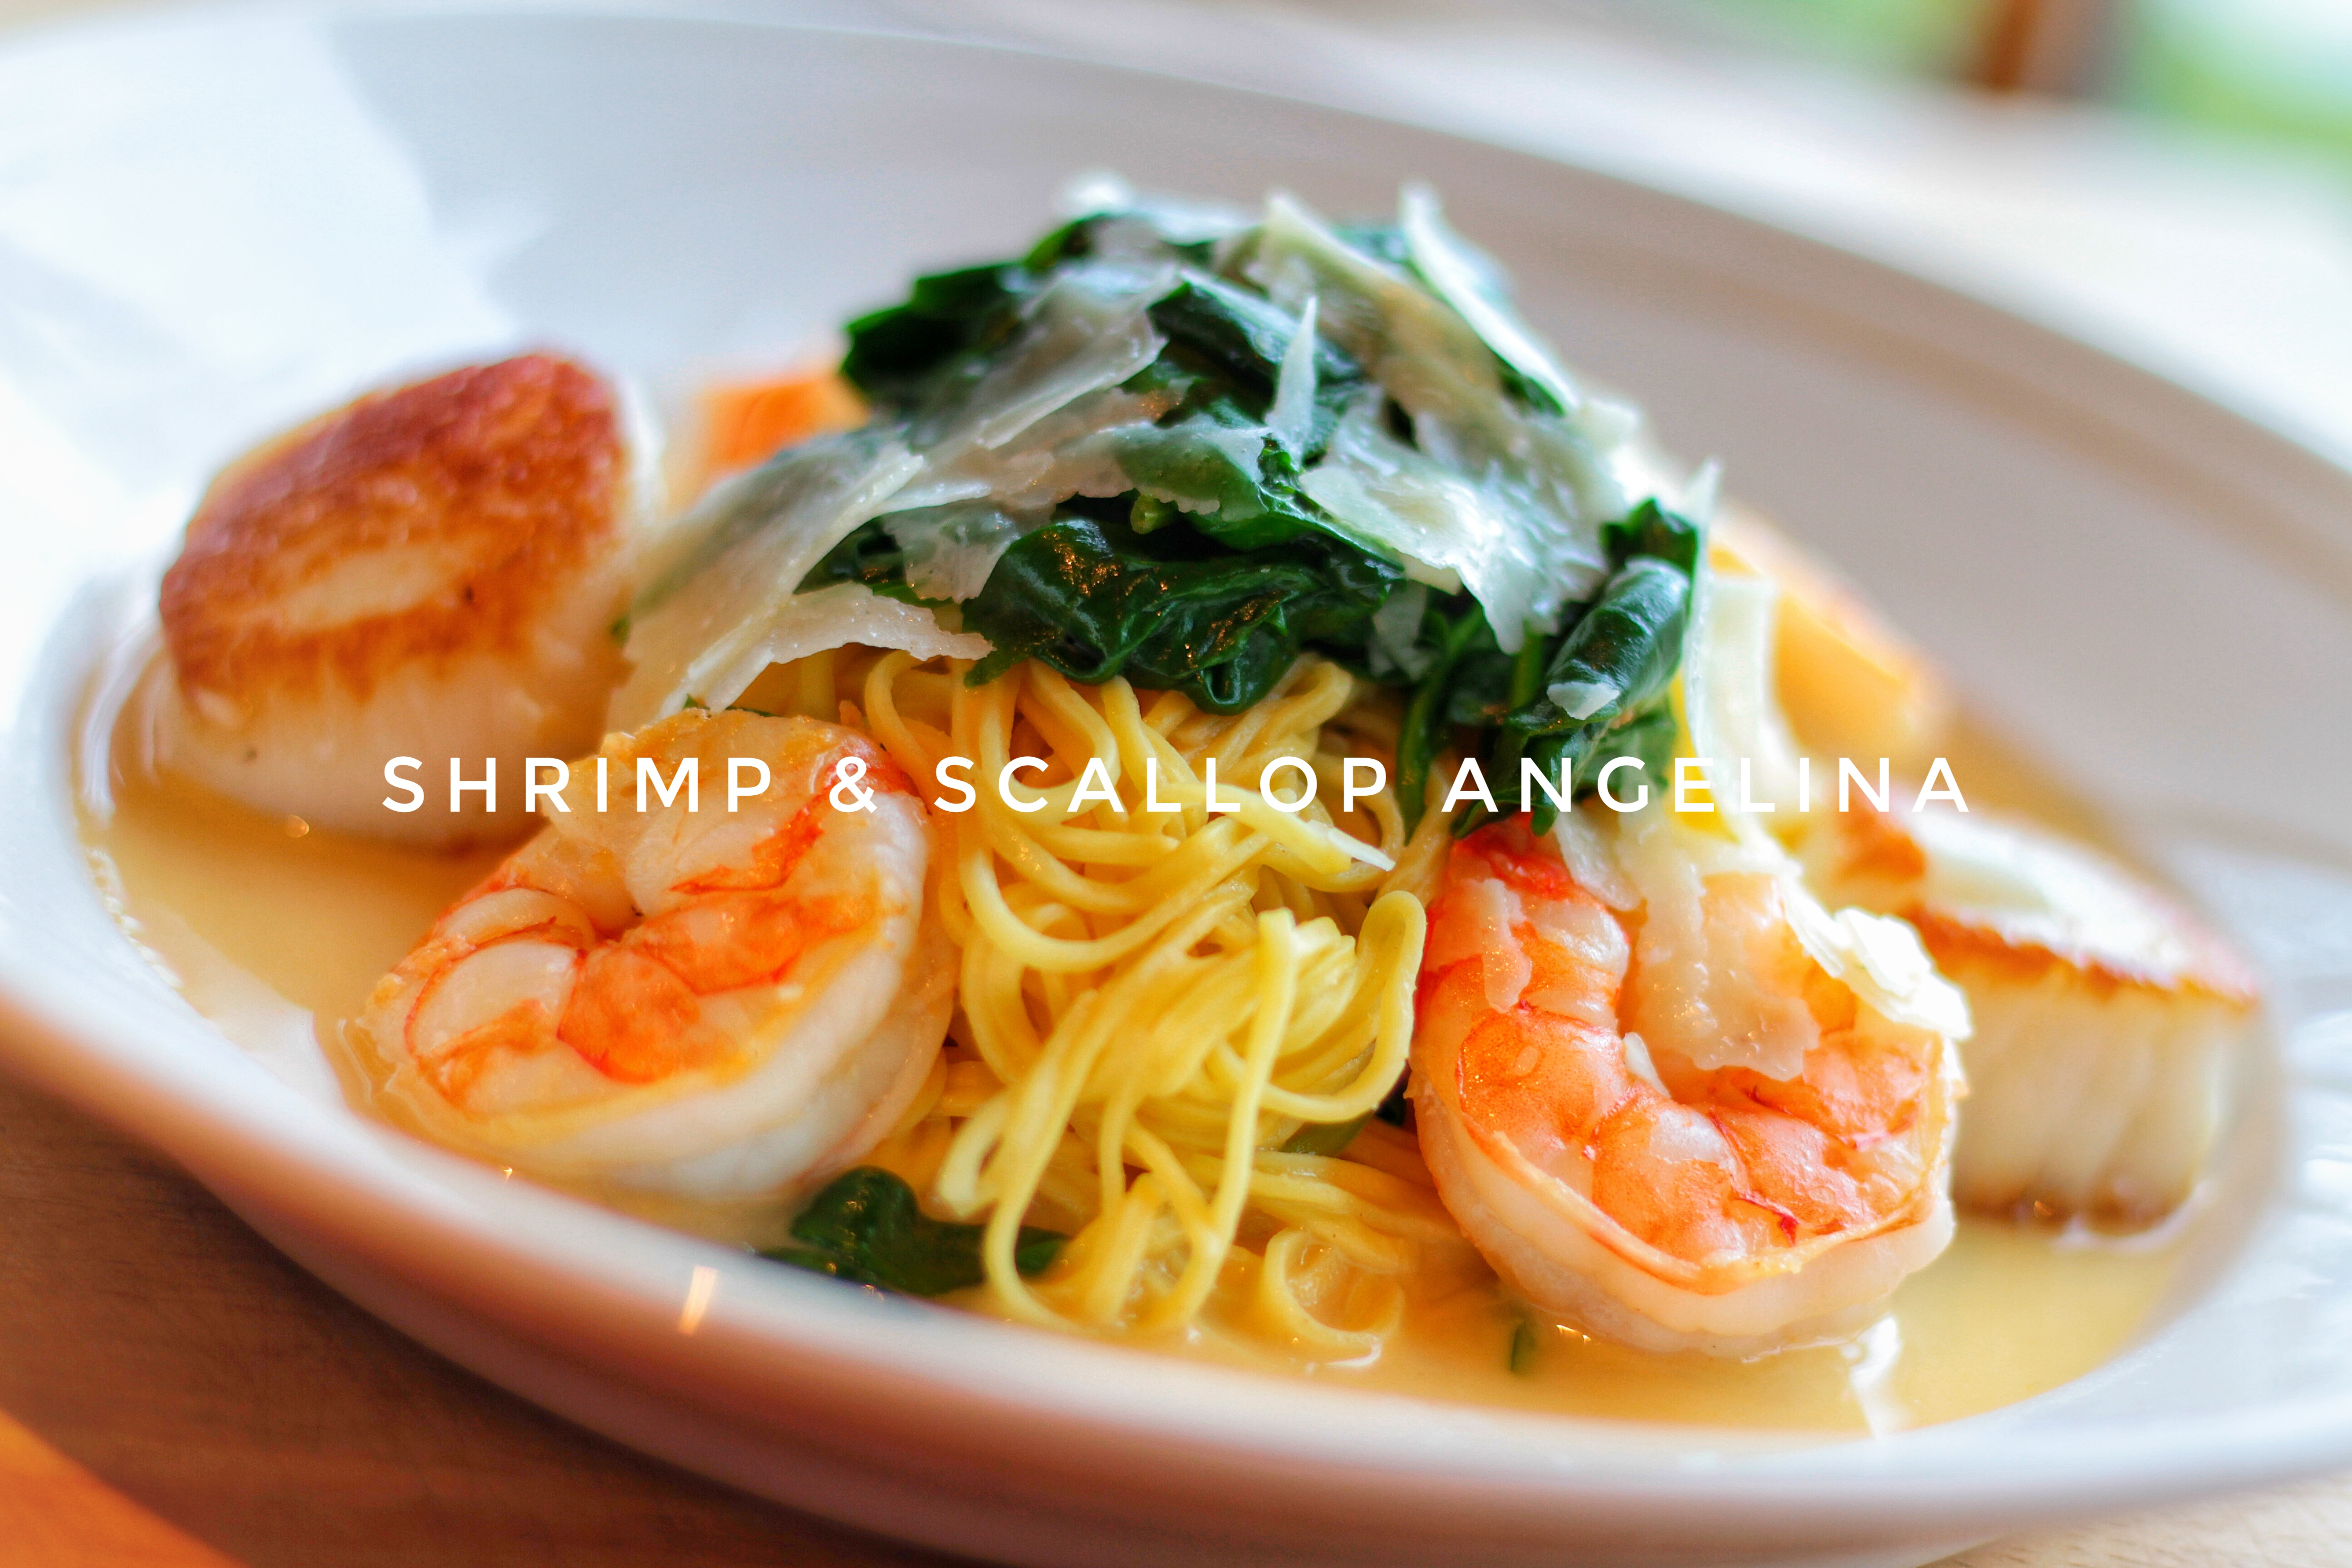 Shrimp and Scallop with text